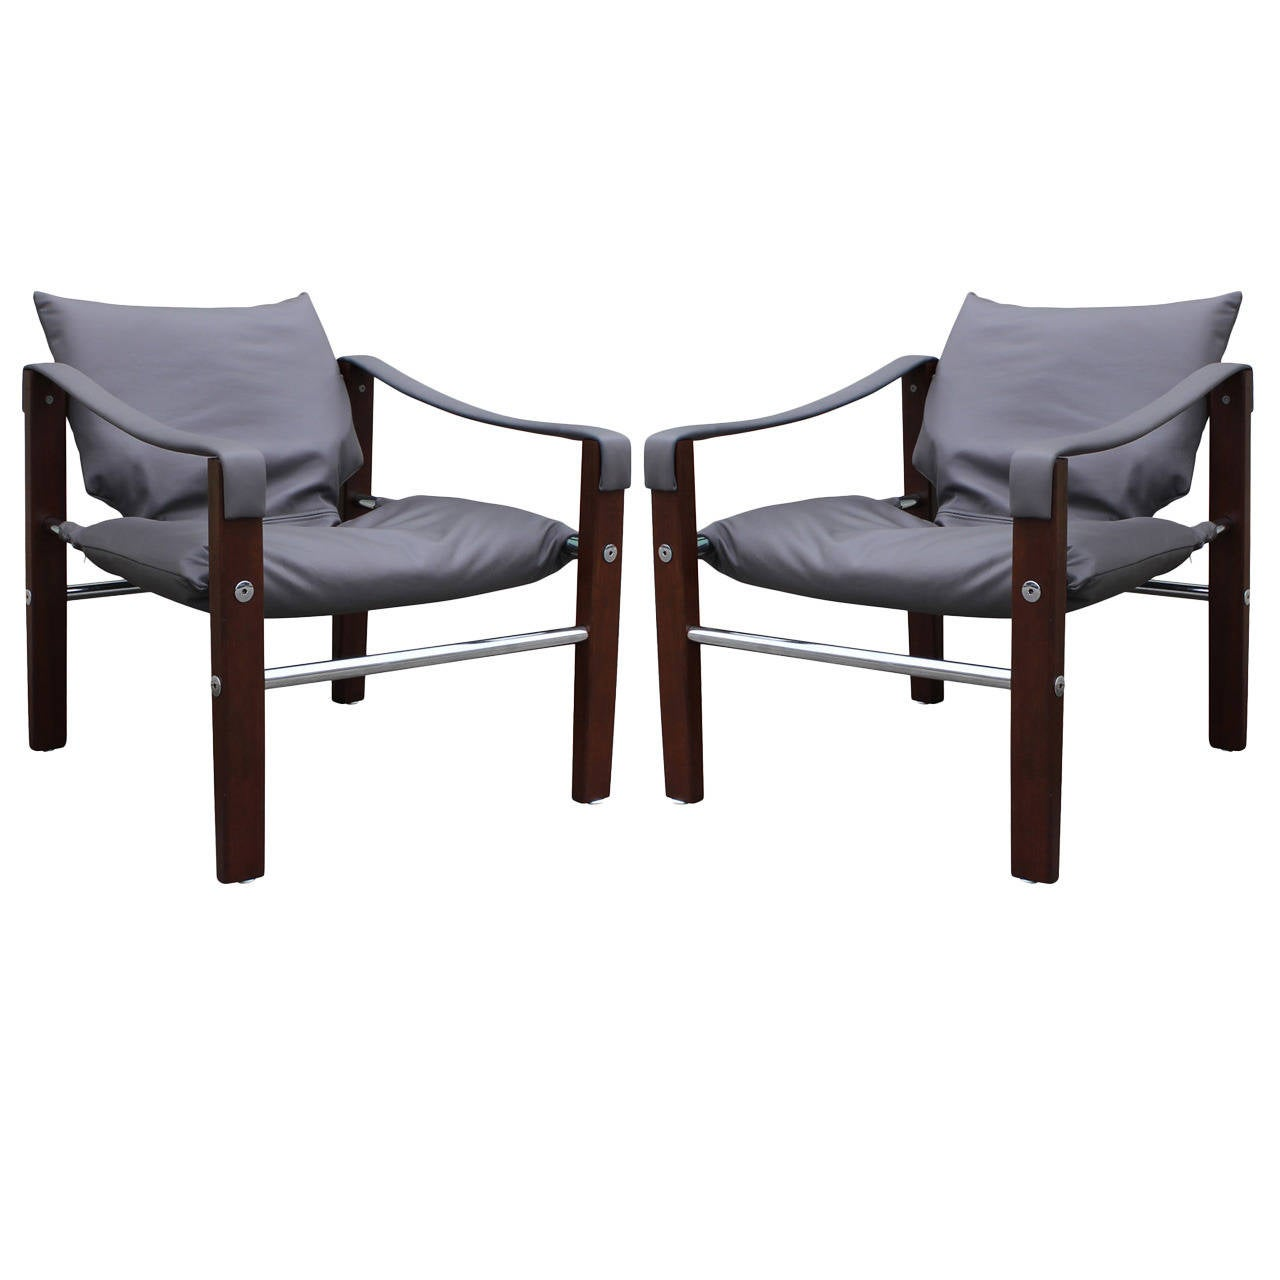 Pair Of Safari Chairs By Maurice Burke For Arkana At 1stdibs